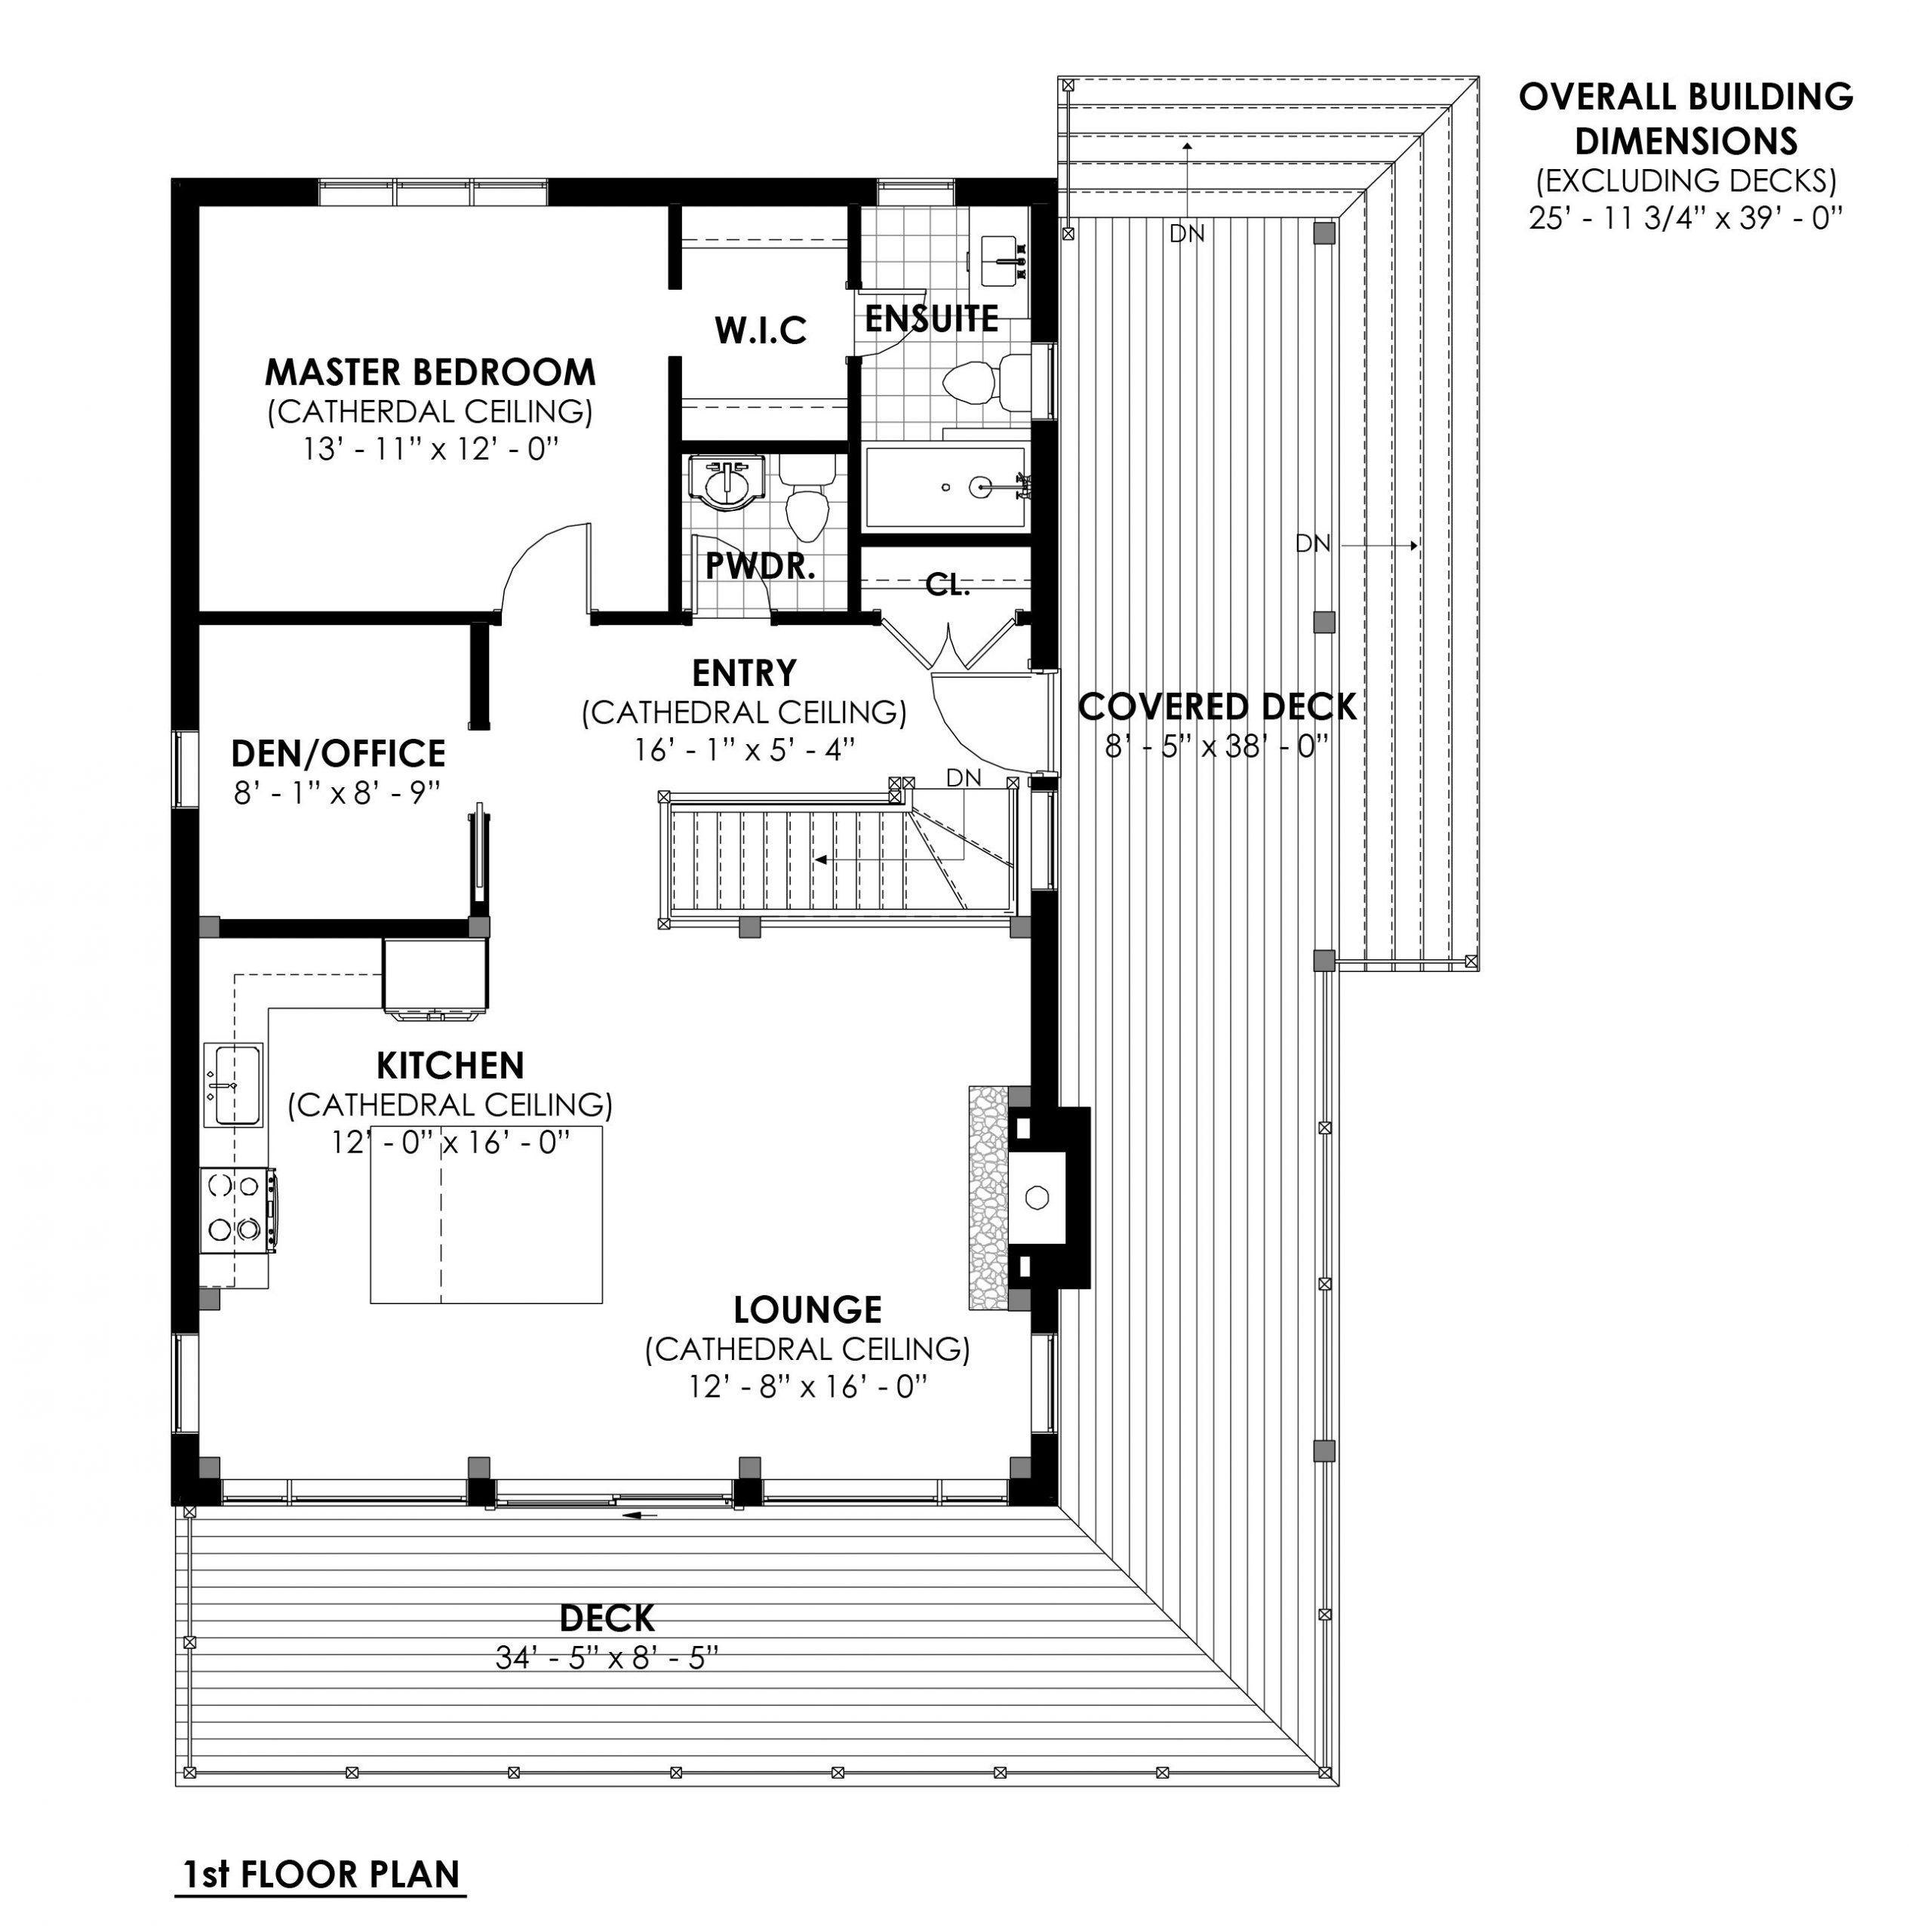 Timber Frame Open Concept House Plans   The Rouge   Normerica   Floor Plans, First Floor, Option 1